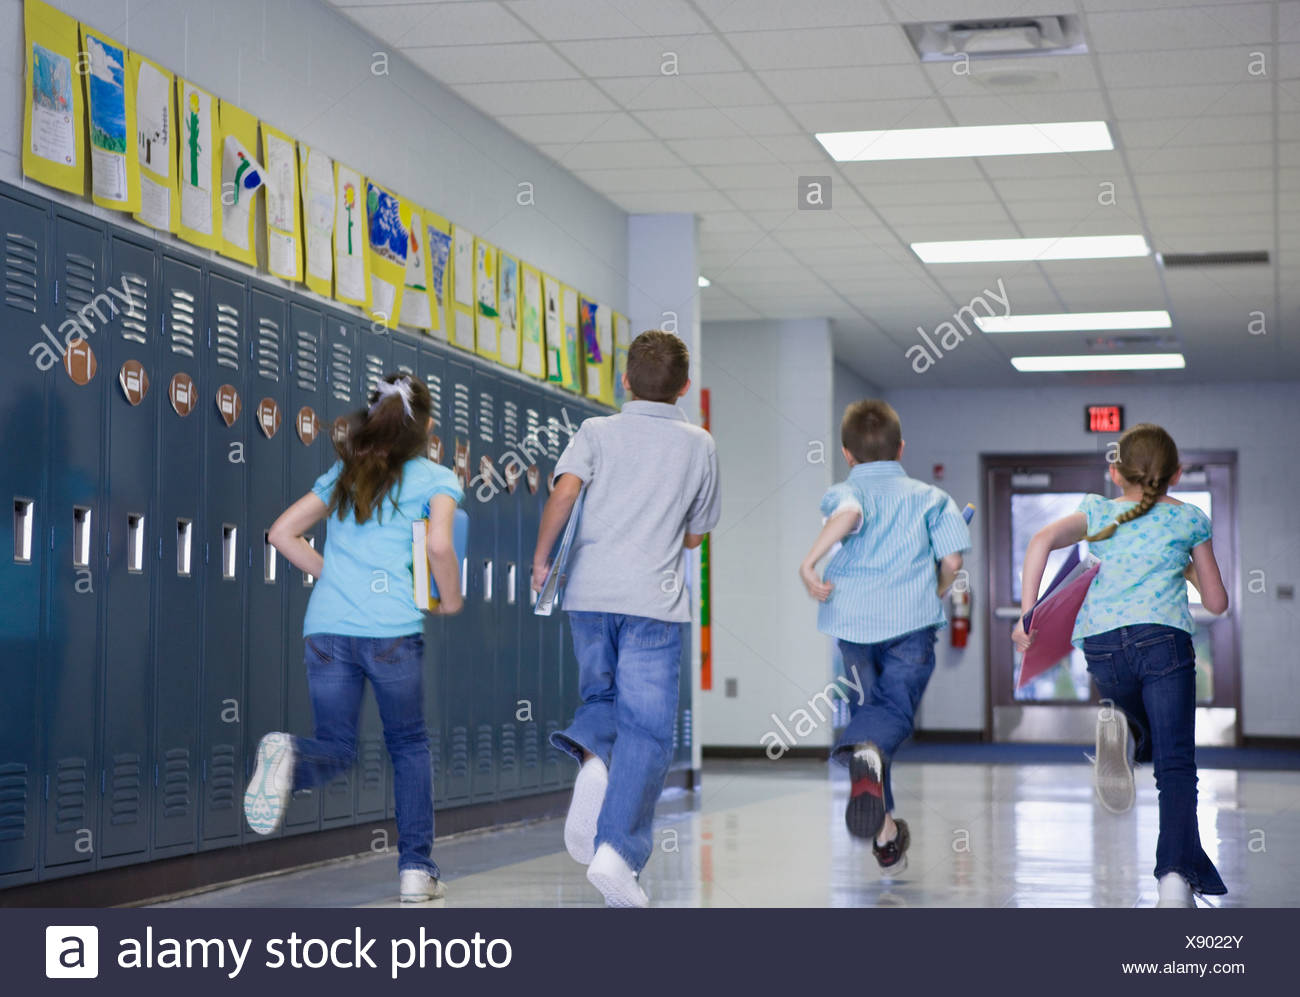 USA, Illinois, Metamora, Rear view of children (8-9, 10-11) running through school corridor - Stock Image